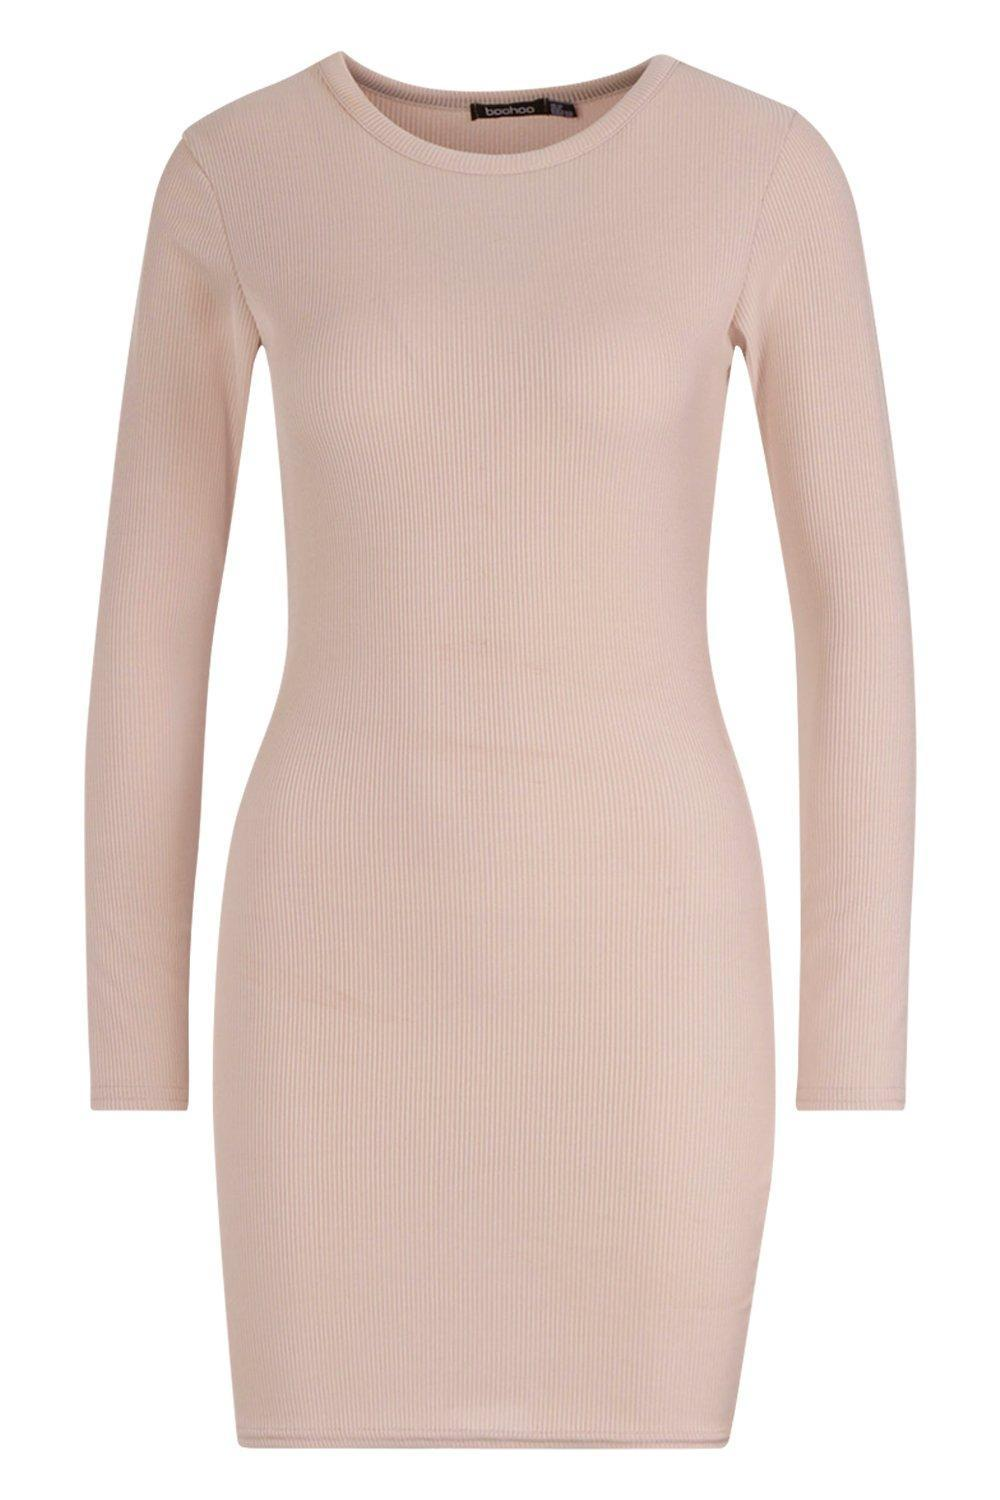 c7c1fe8aa7ef9 Boohoo - Natural Ribbed Basic Long Sleeve Bodycon Dress - Lyst. View  fullscreen